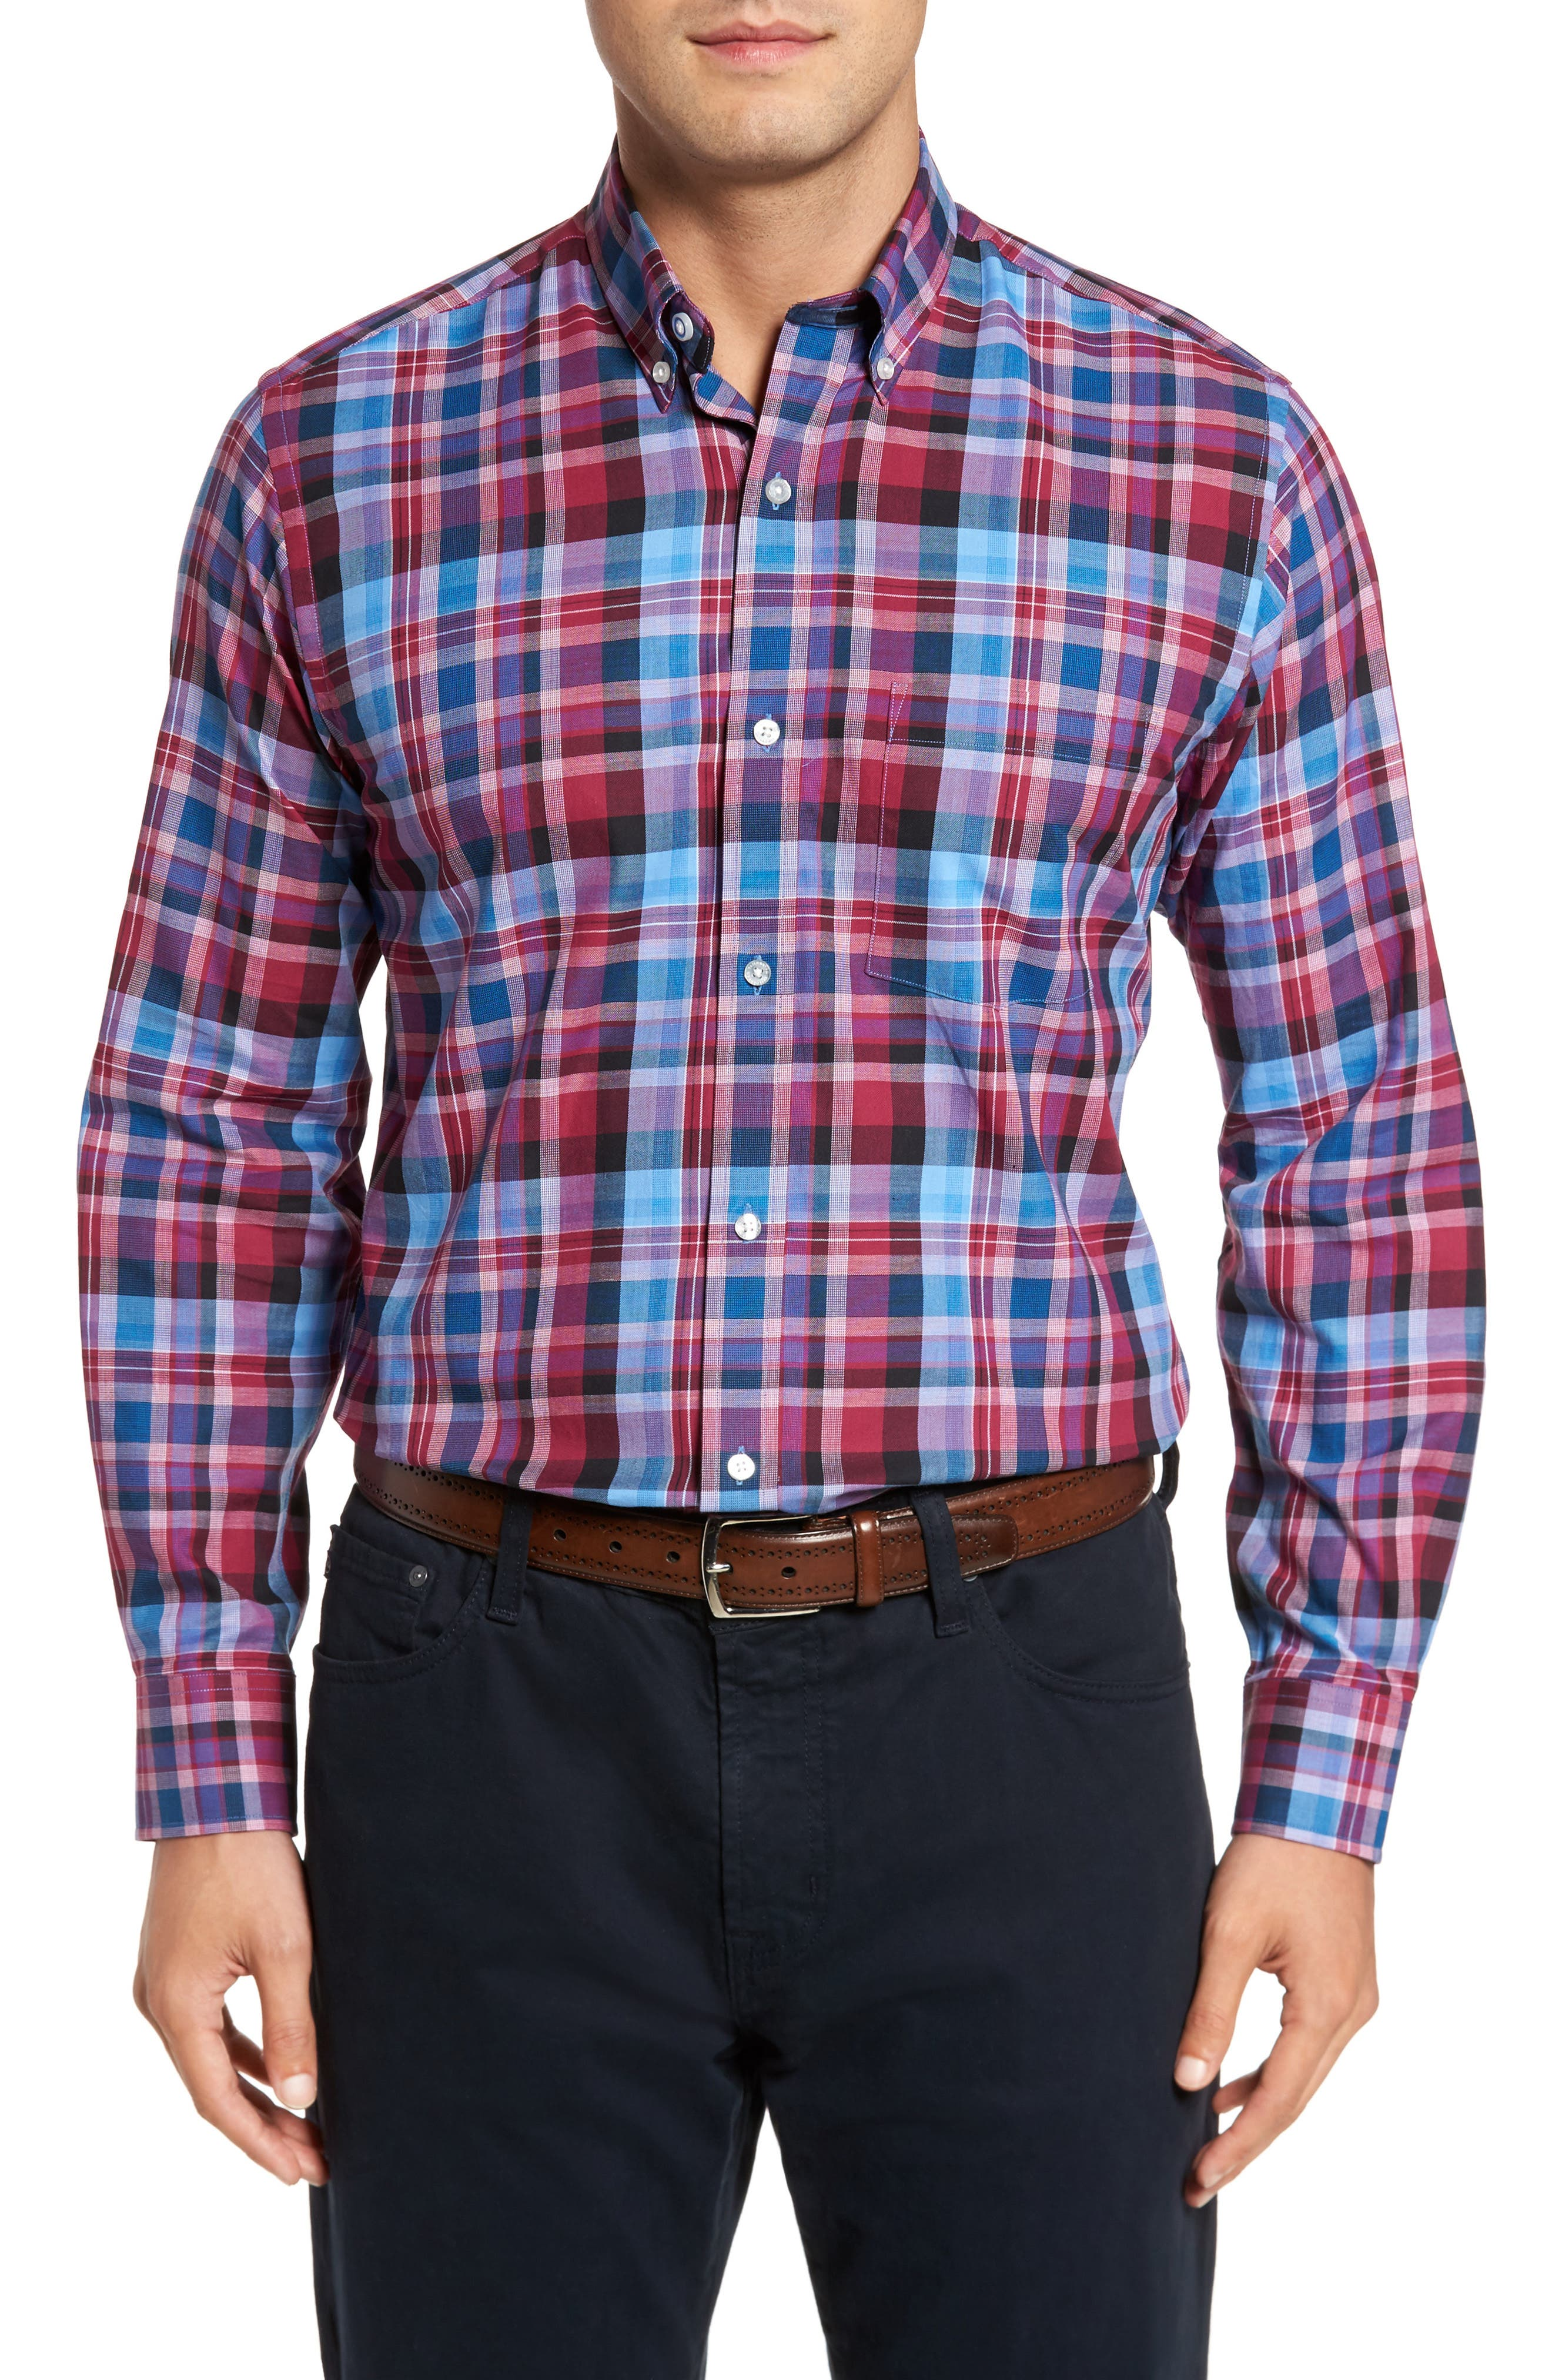 Alternate Image 1 Selected - TailorByrd Colfax Plaid Sport Shirt